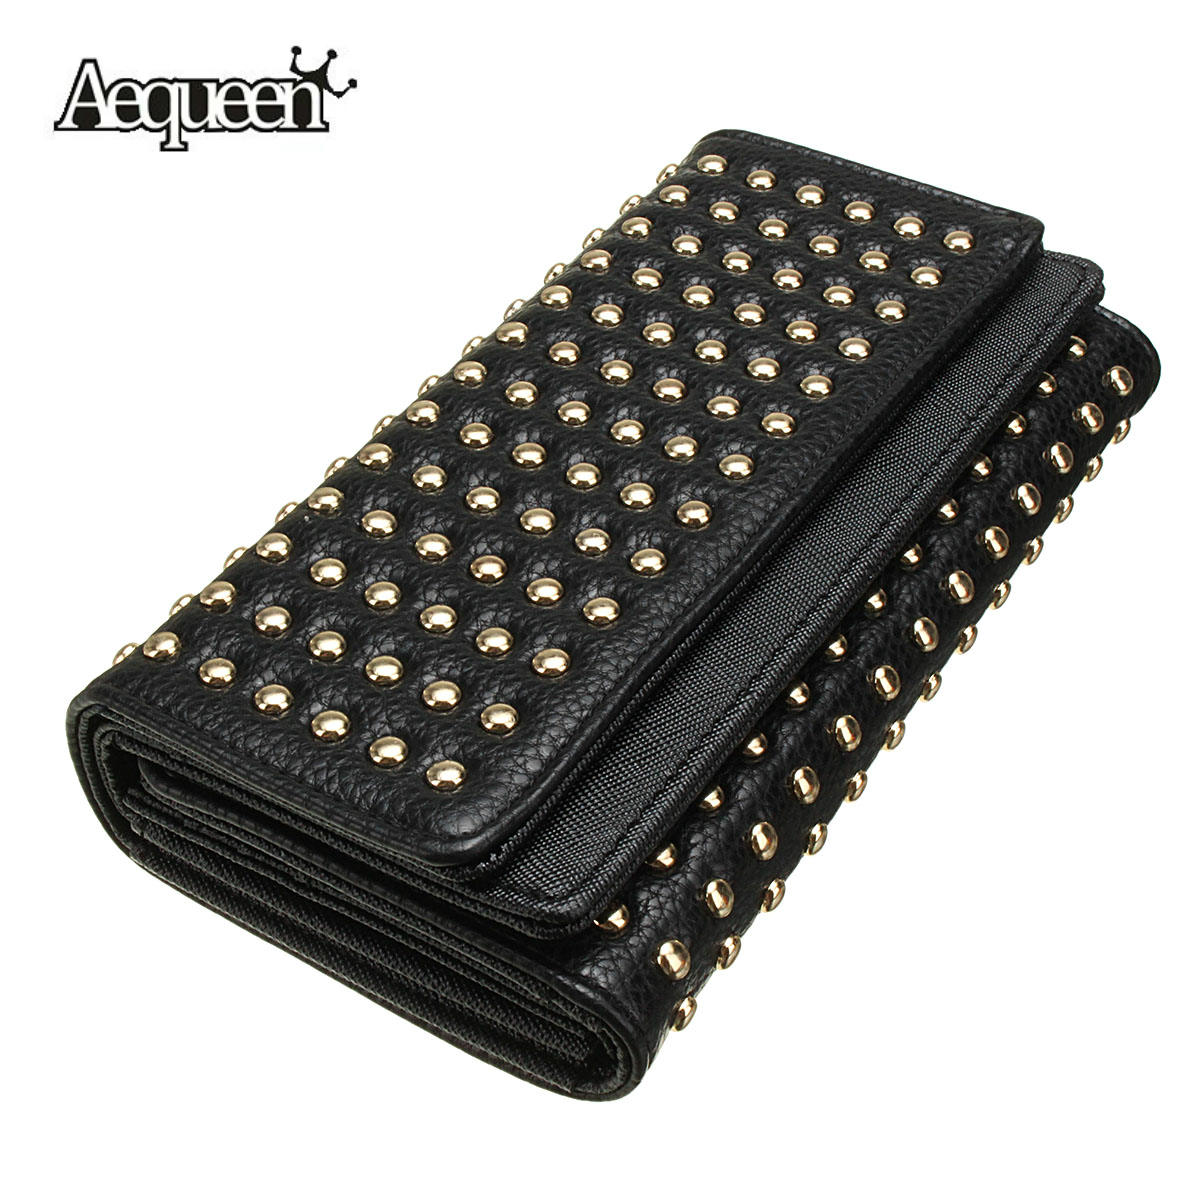 AEQUEEN Fashion Women Wallets Rivet Synthetic Leather Wallet Women's Long Design Purse Two Fold Clutch Coin Purses Pouch Card fashion women leather handbag crossbody shoulder messenger phone coin bag for party or appointment as designer gift a7